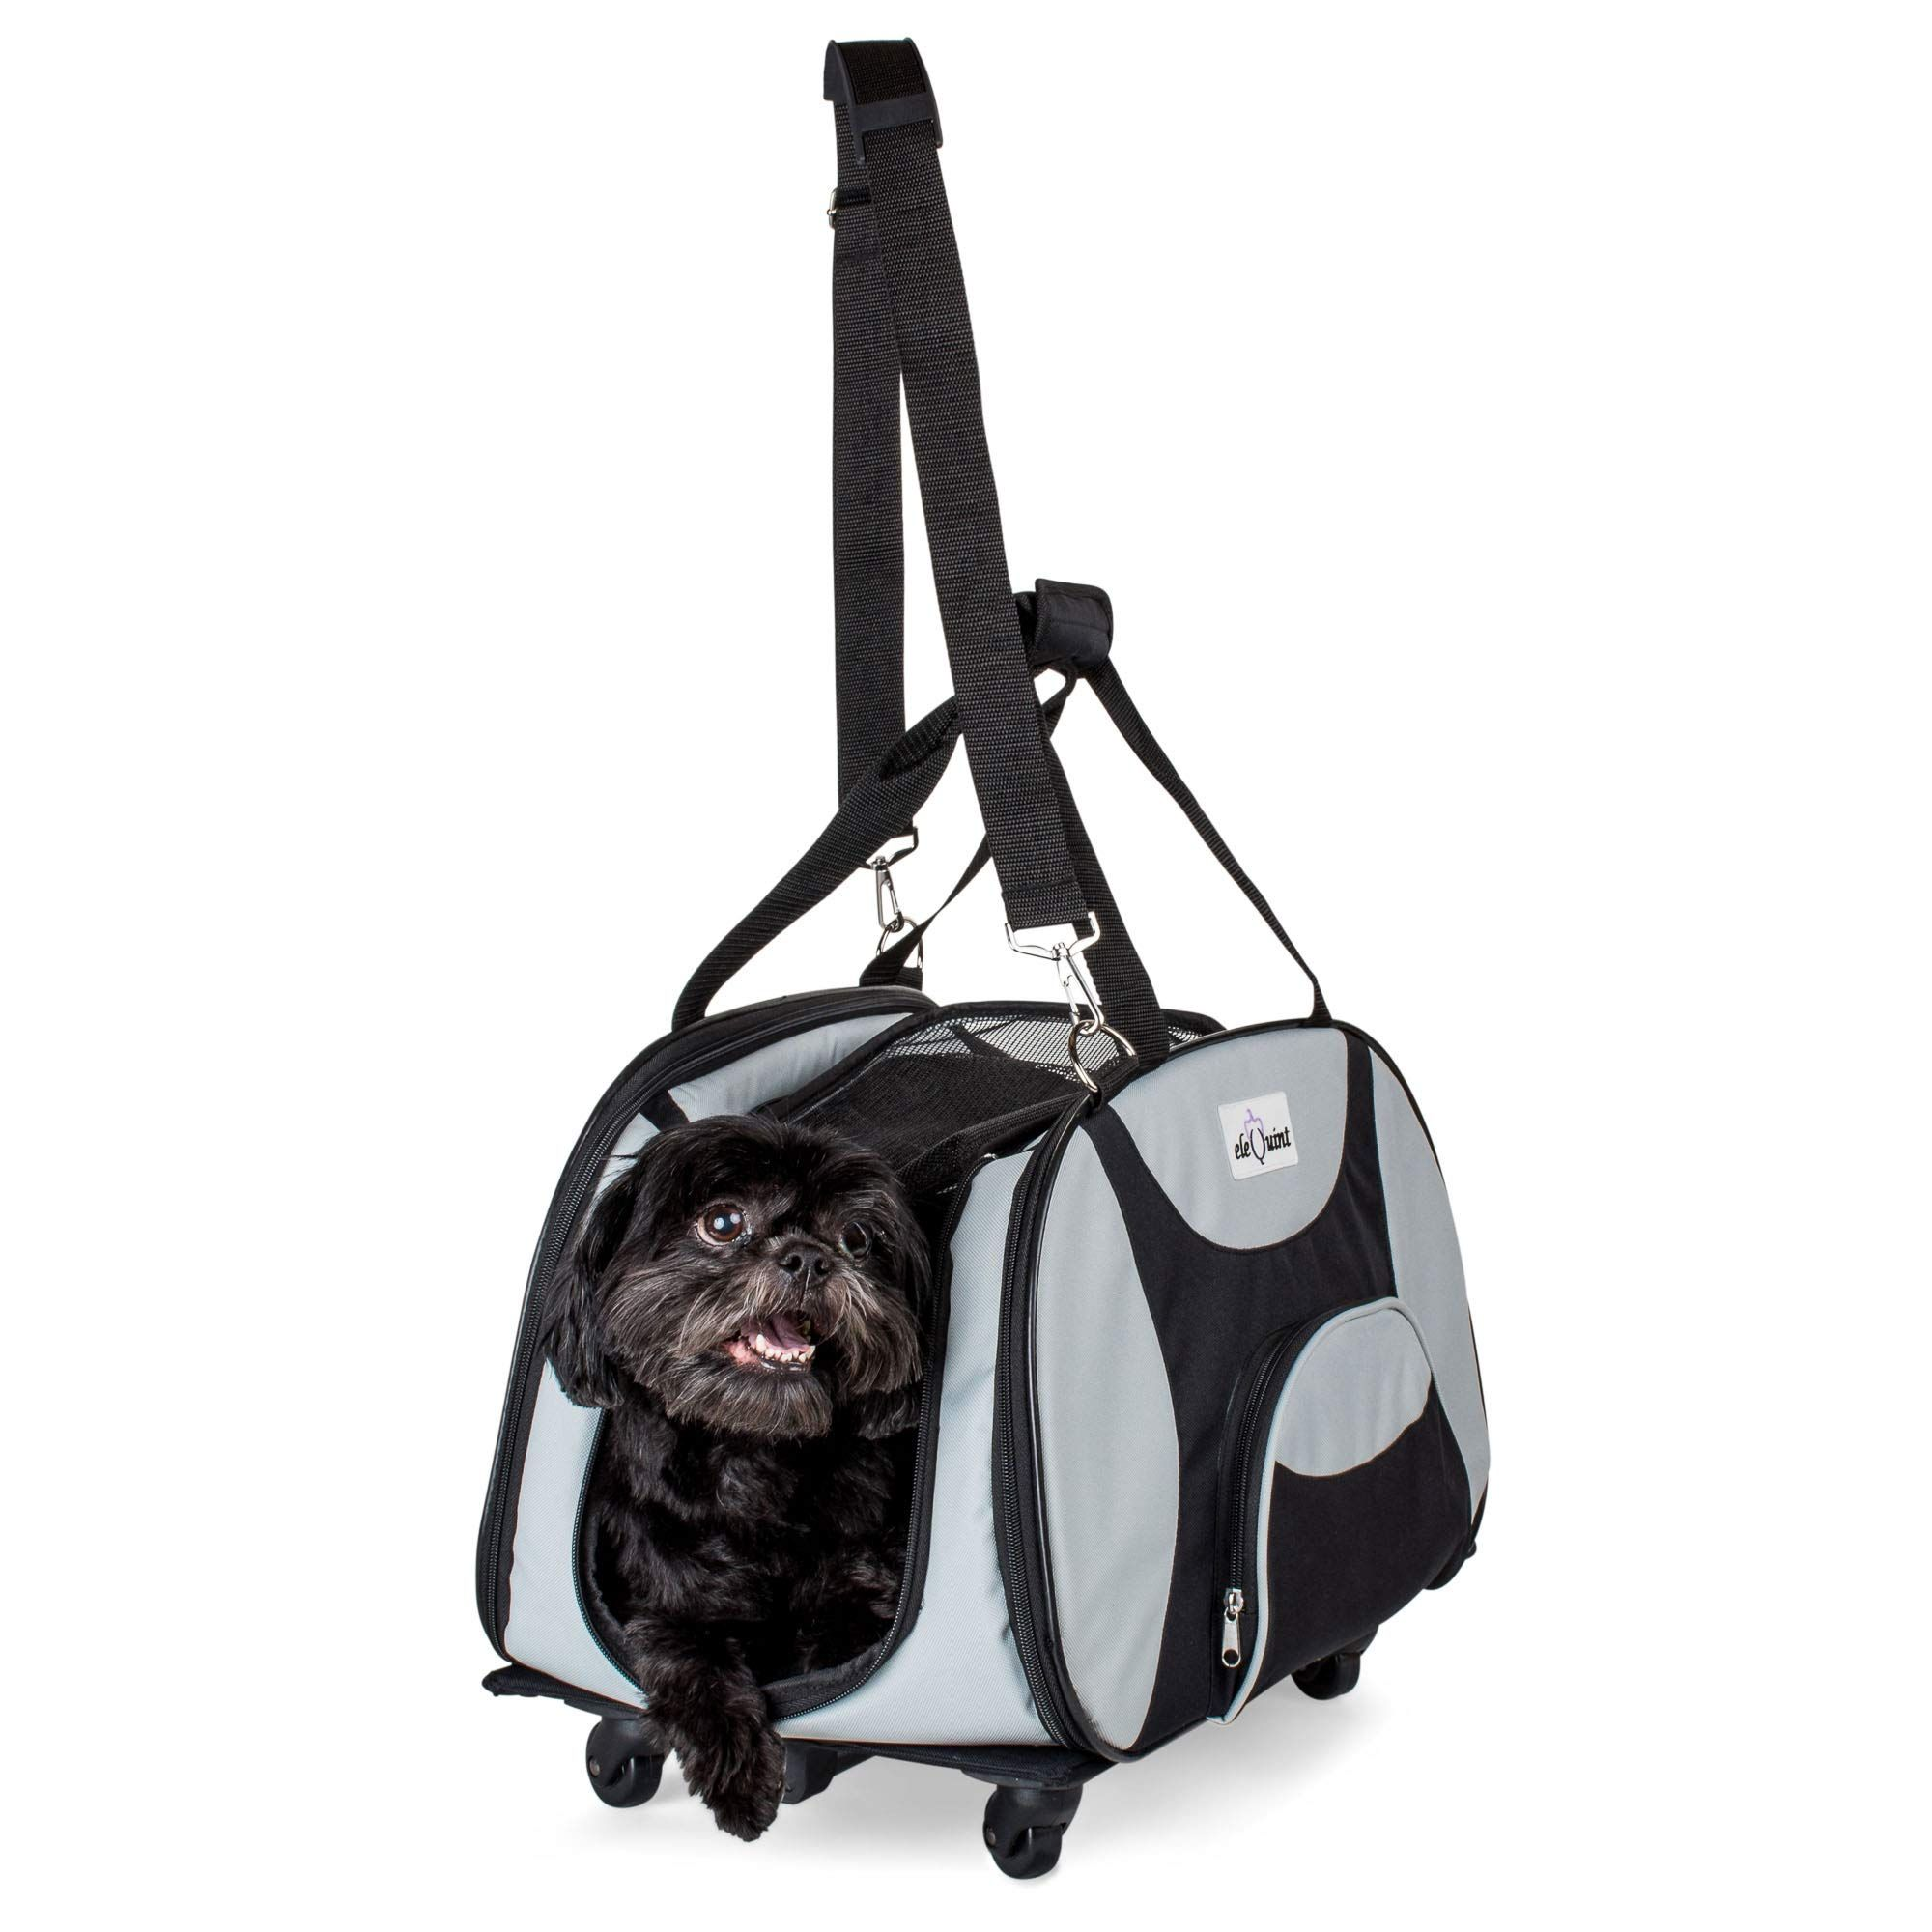 d7595253ee3c eleQuint Soft Sided Travel Pet Carrier with Detachable Wheel ...